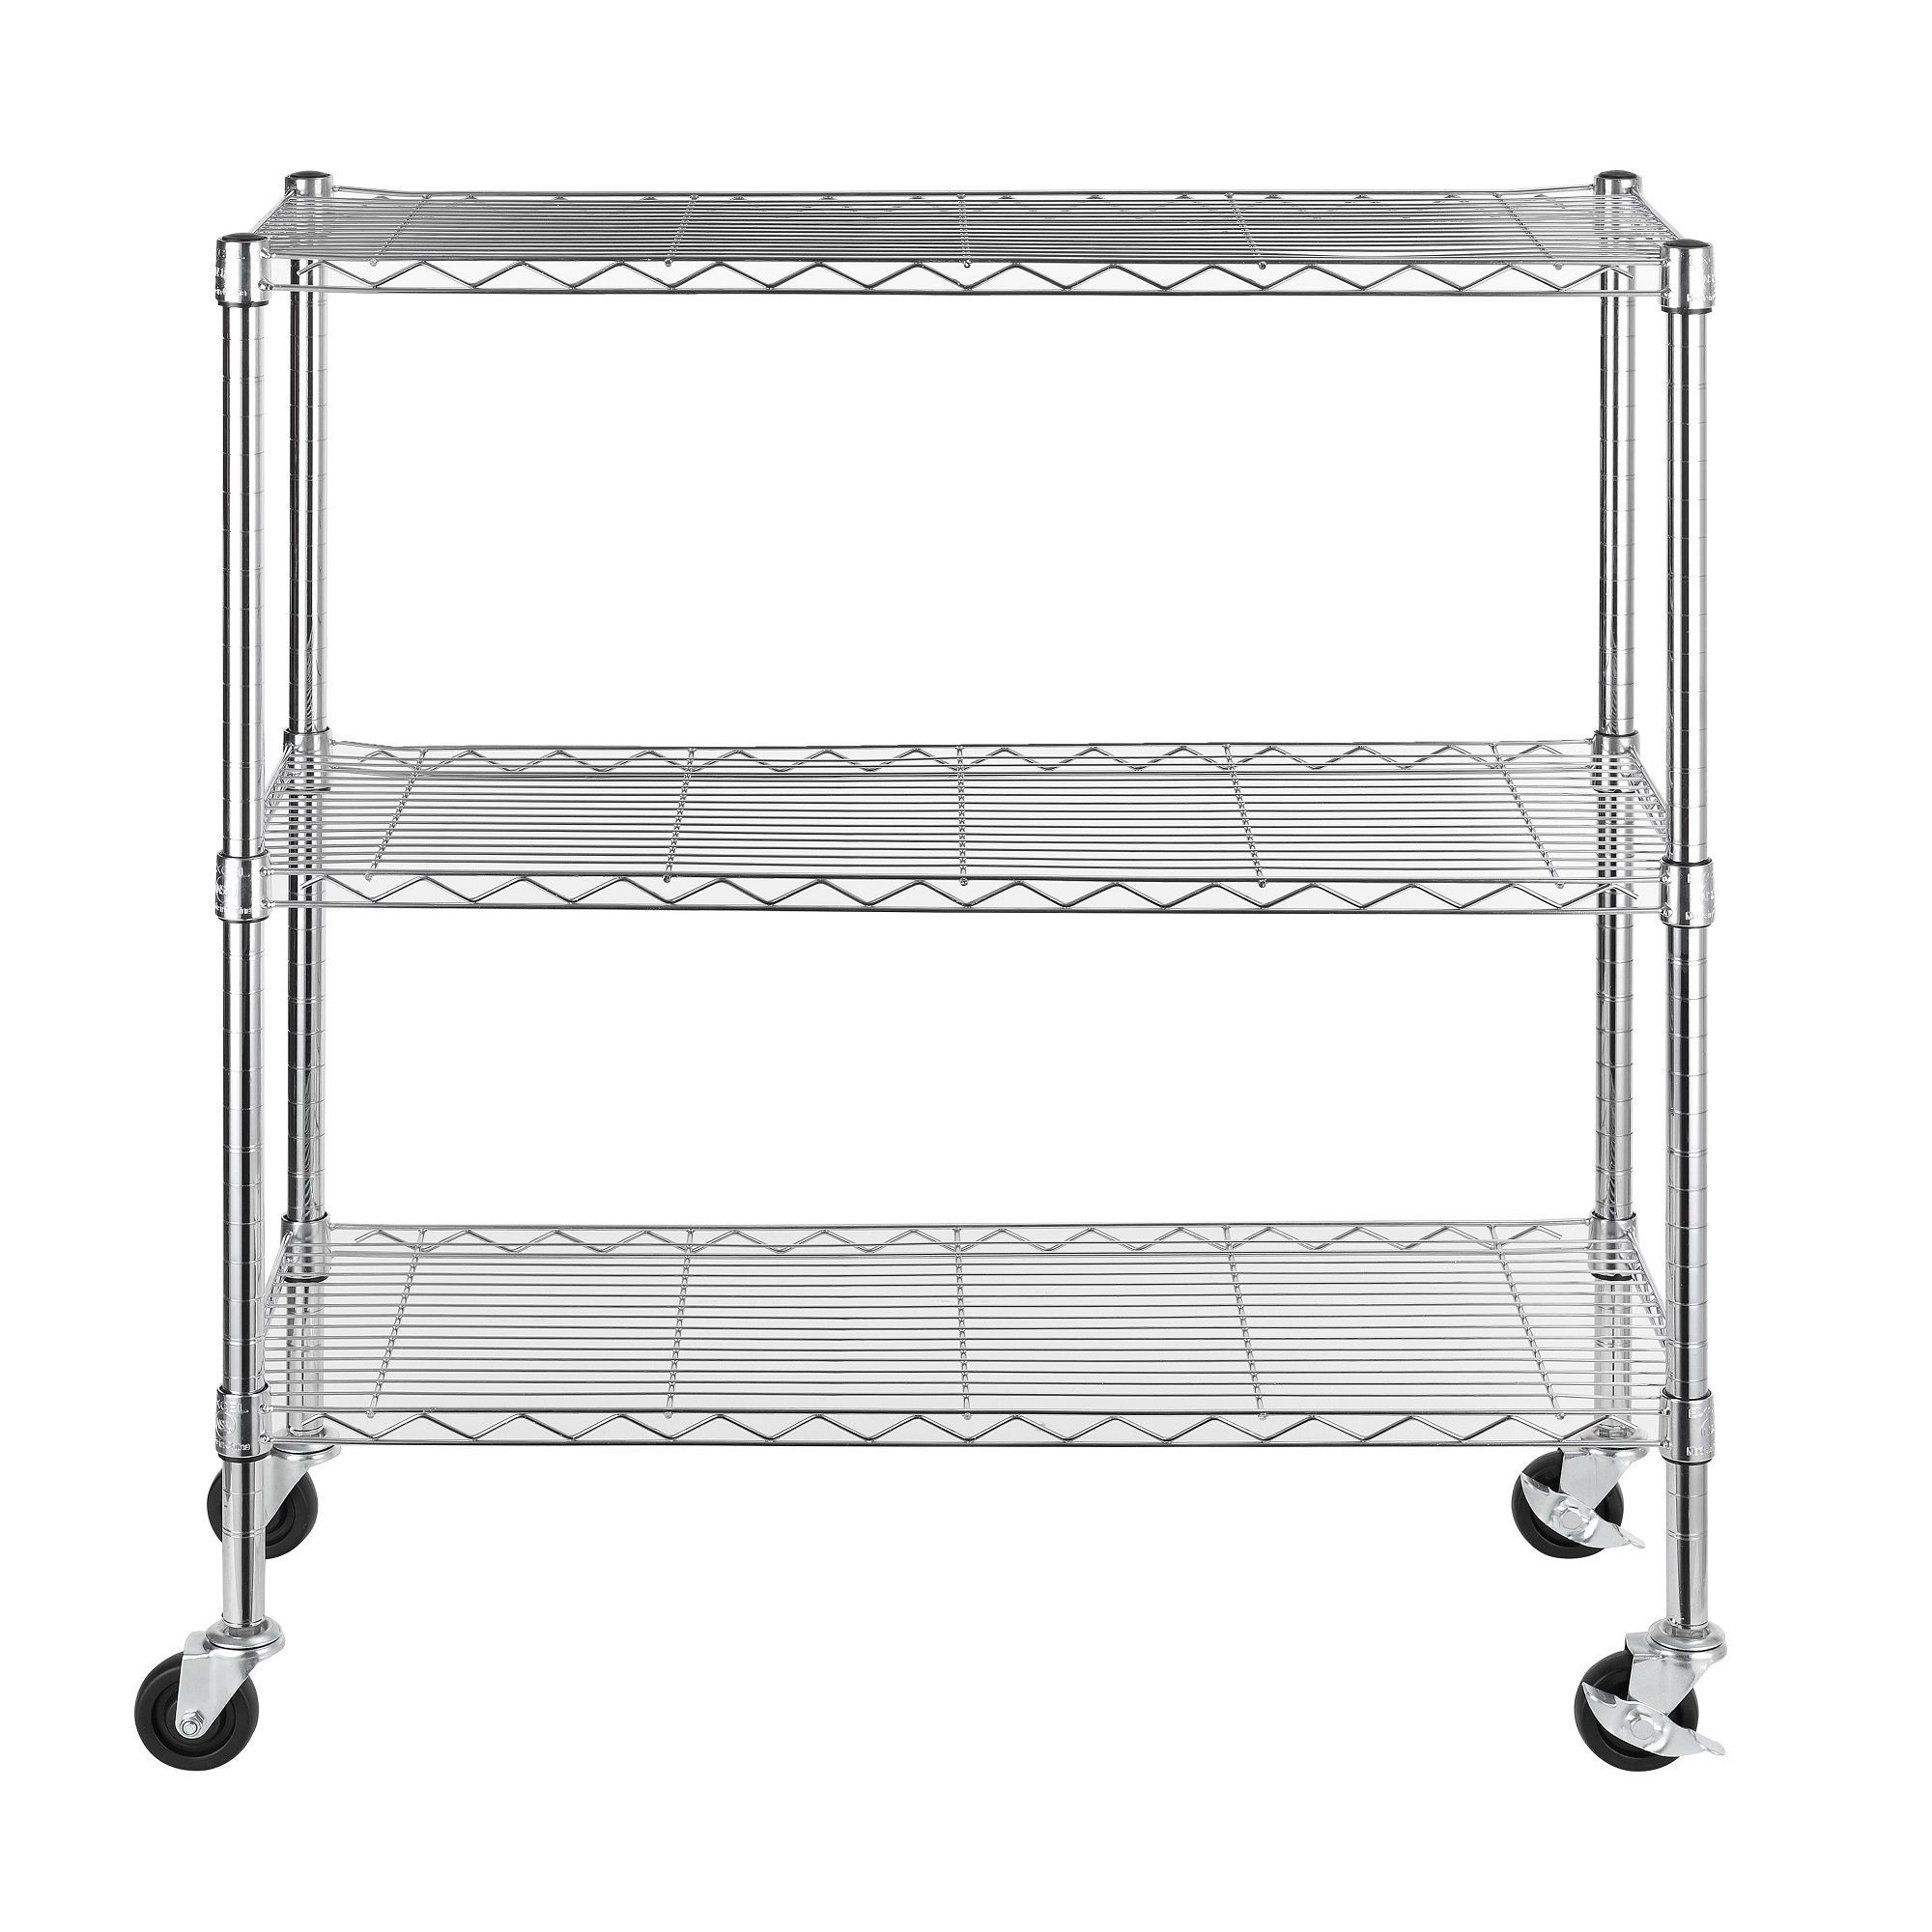 Excels Nsf Certified Multi Purpose Wire Shelving Provides Great Storage For